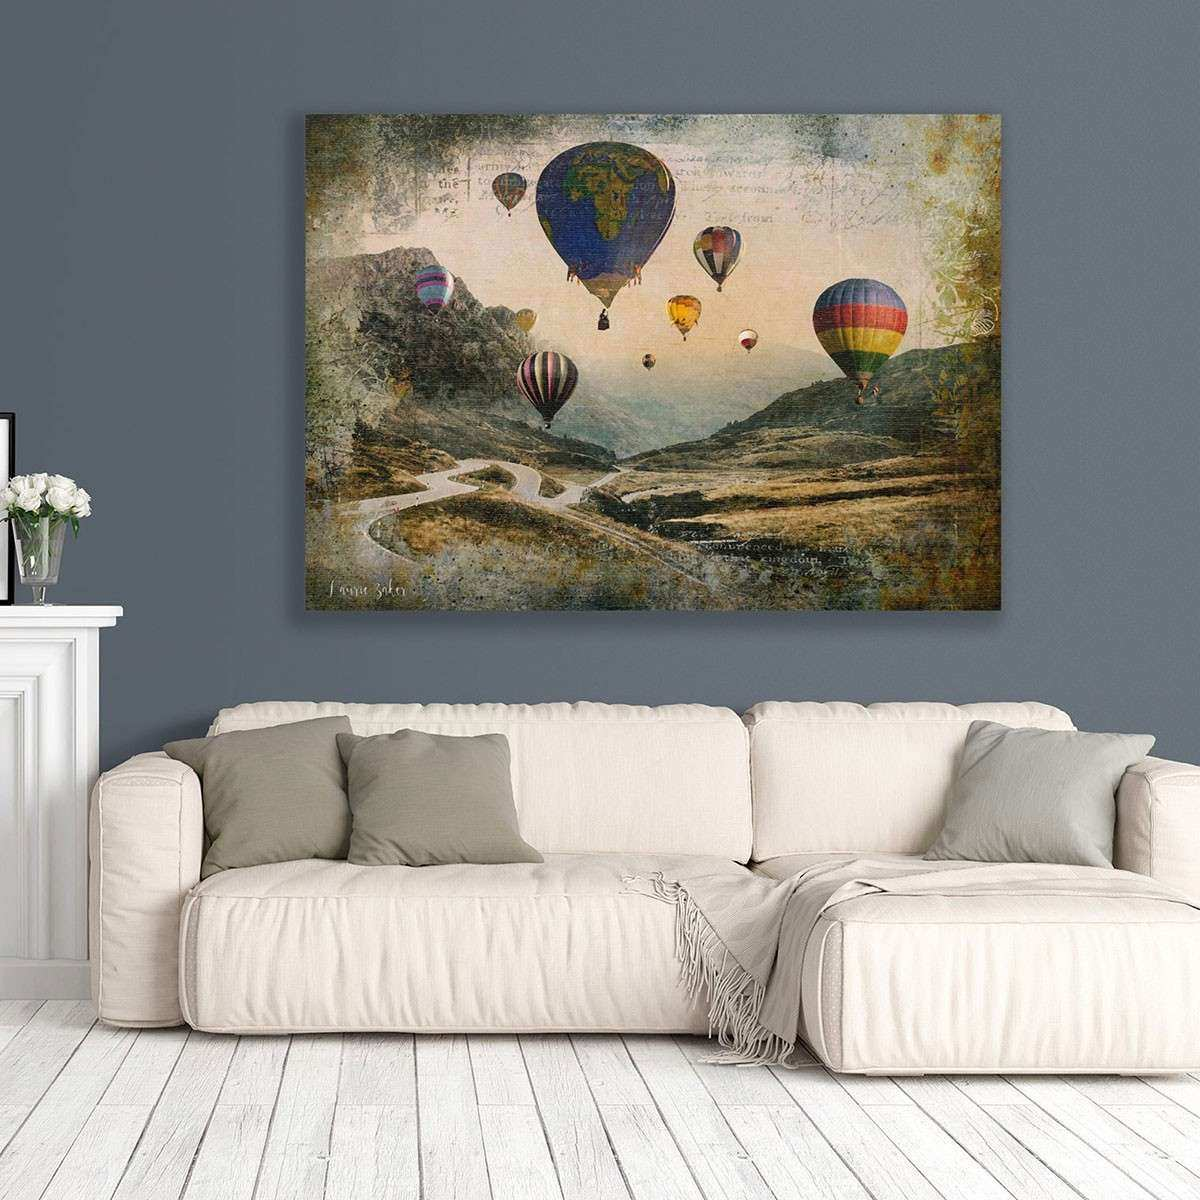 Order Your Custom Canvas Prints line Today